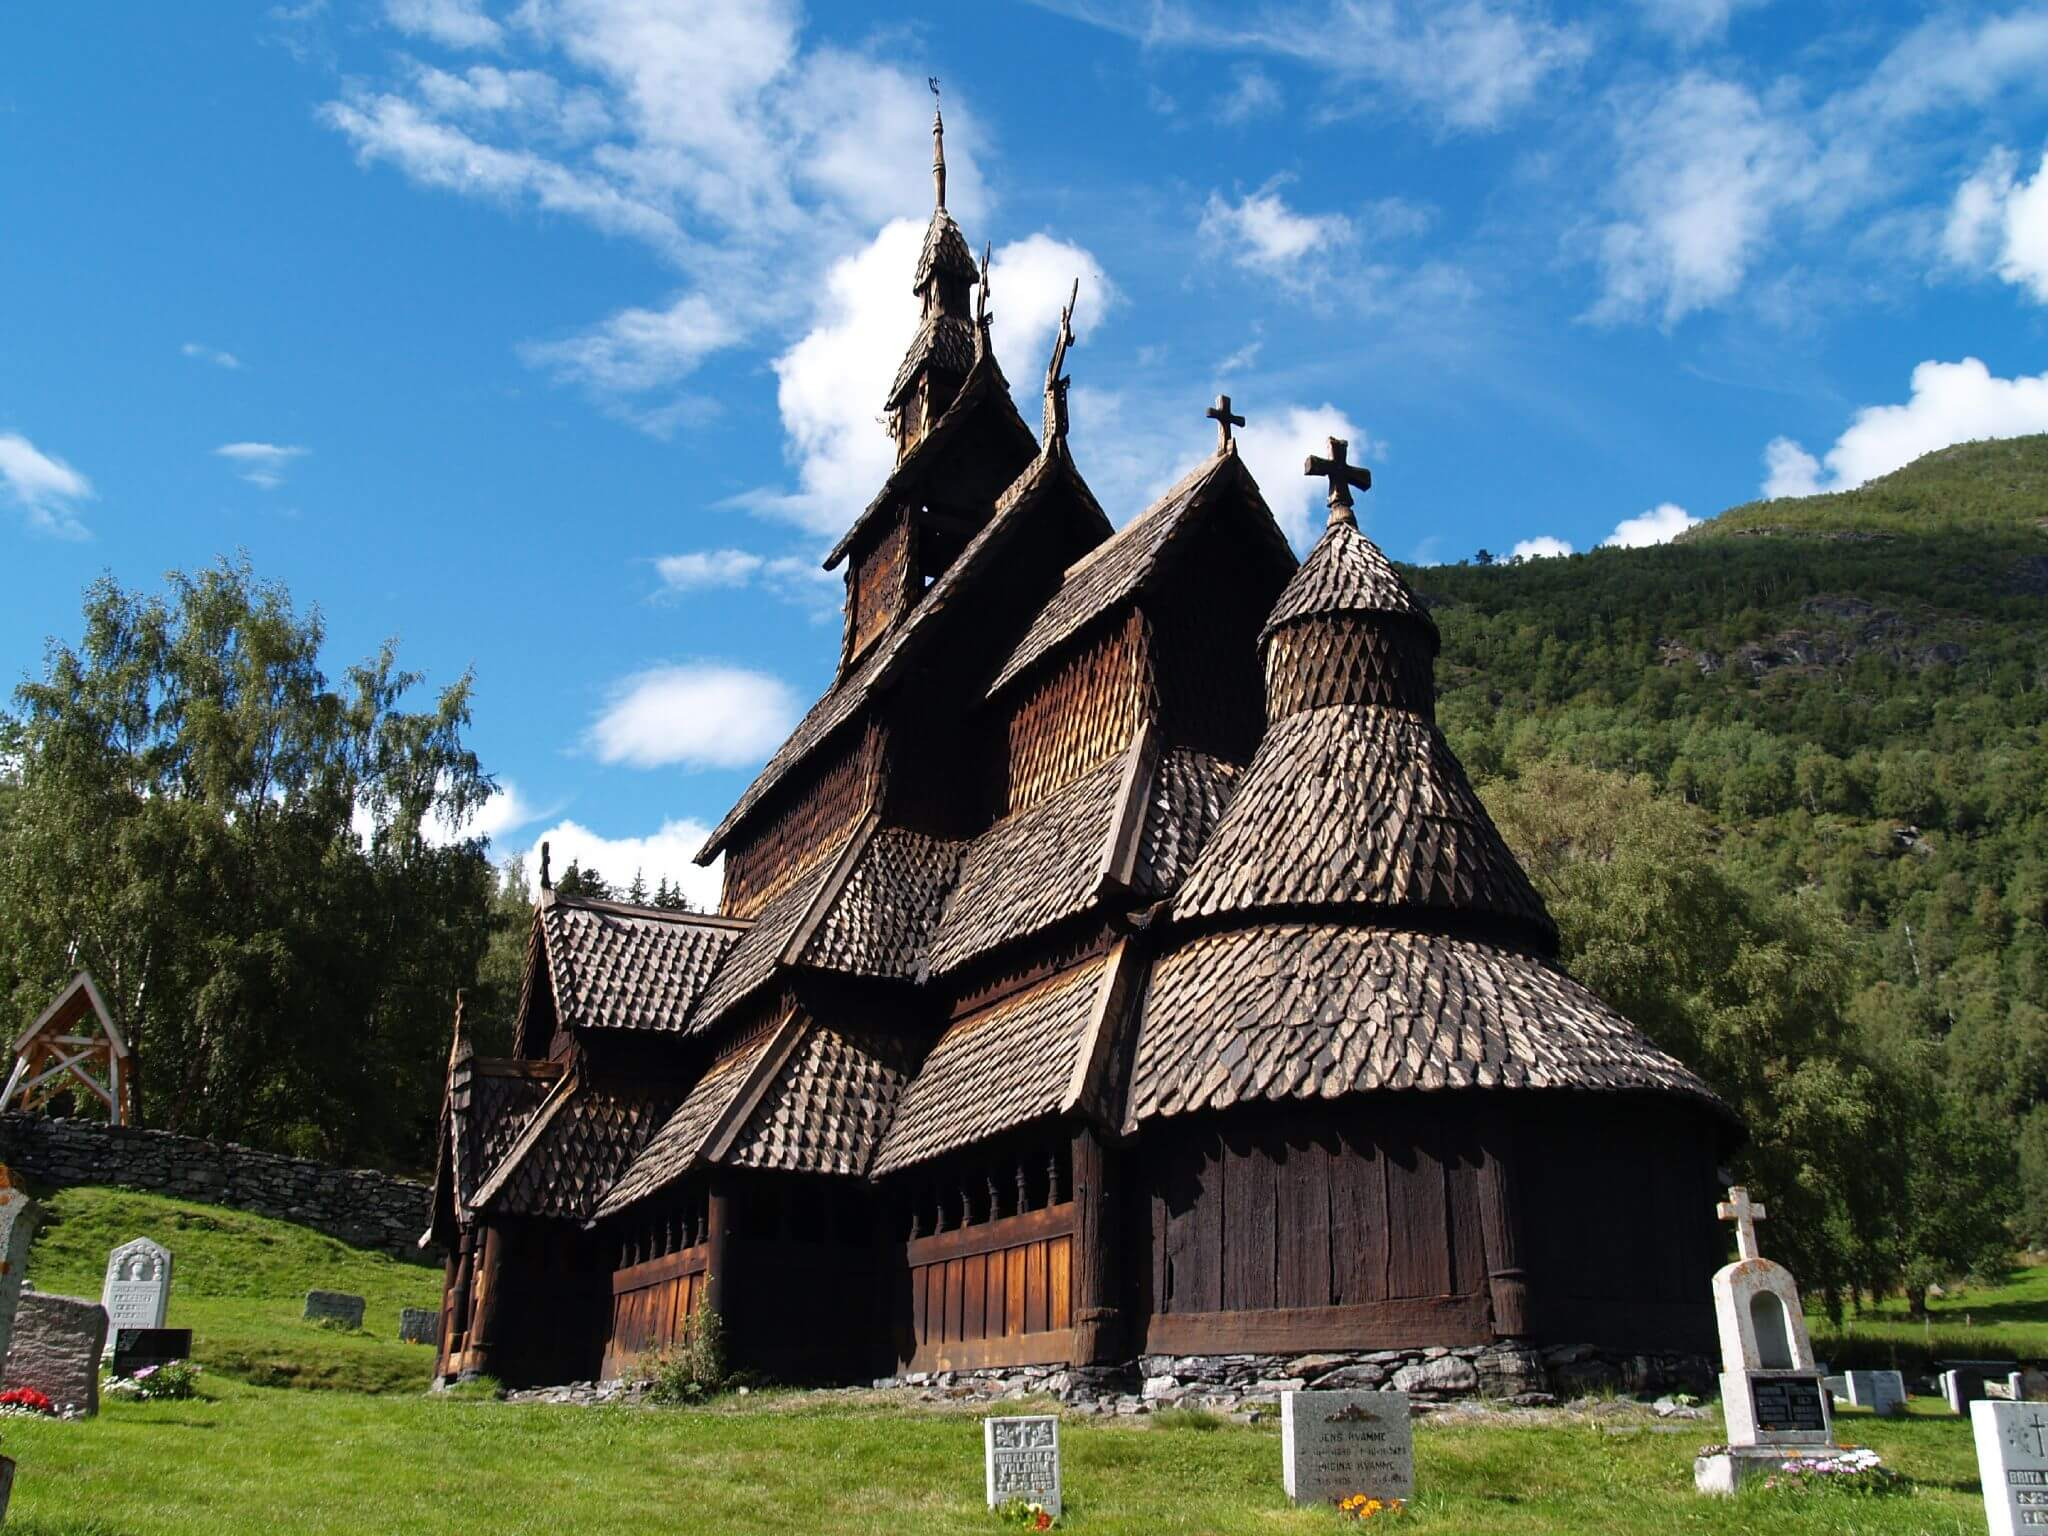 800 year old stave church 5 (1)